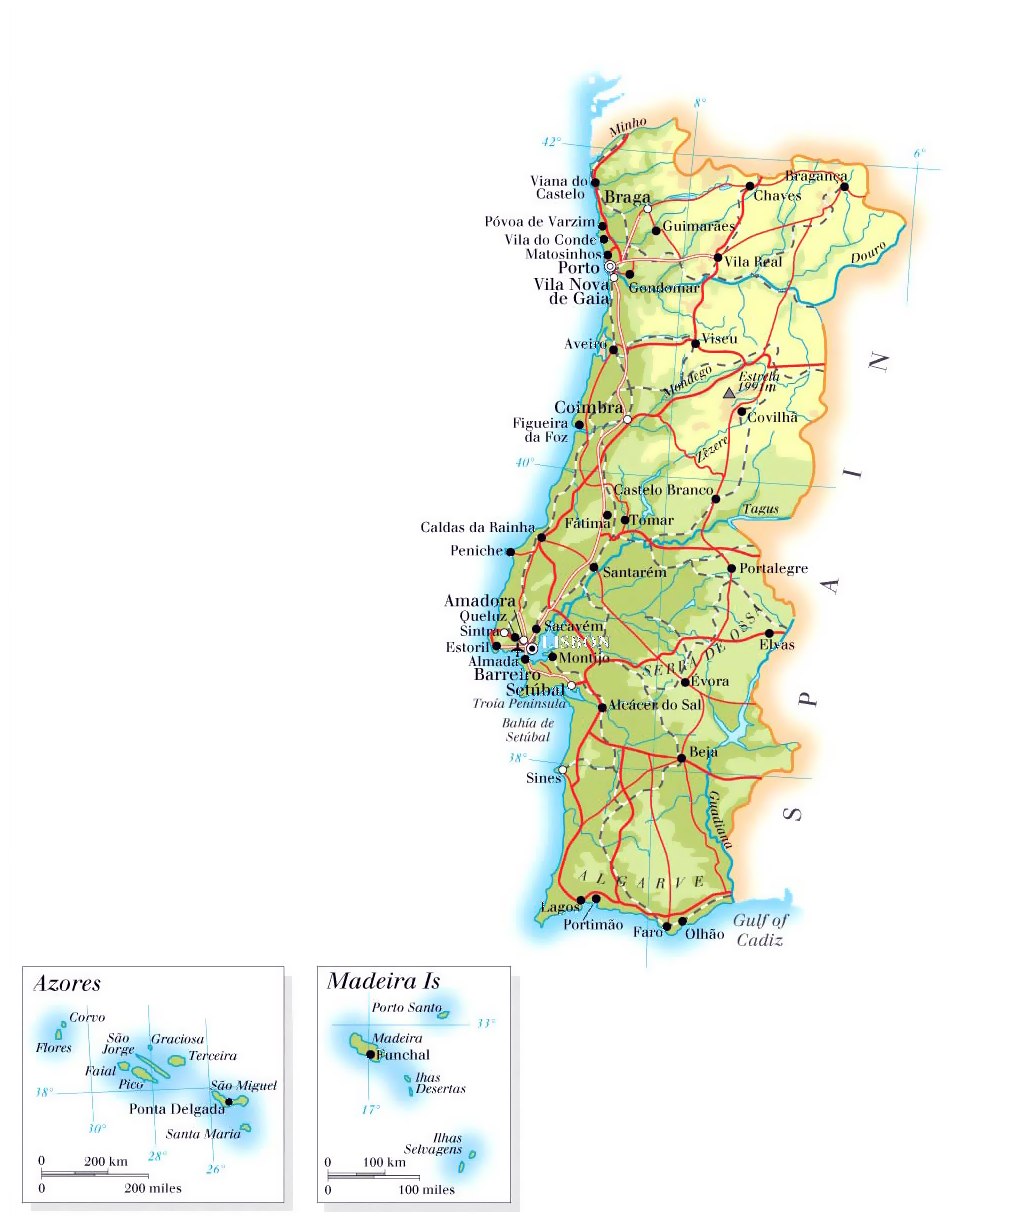 Large Elevation Map Of Portugal With Roads Cities And Airports - Portugal map with airports